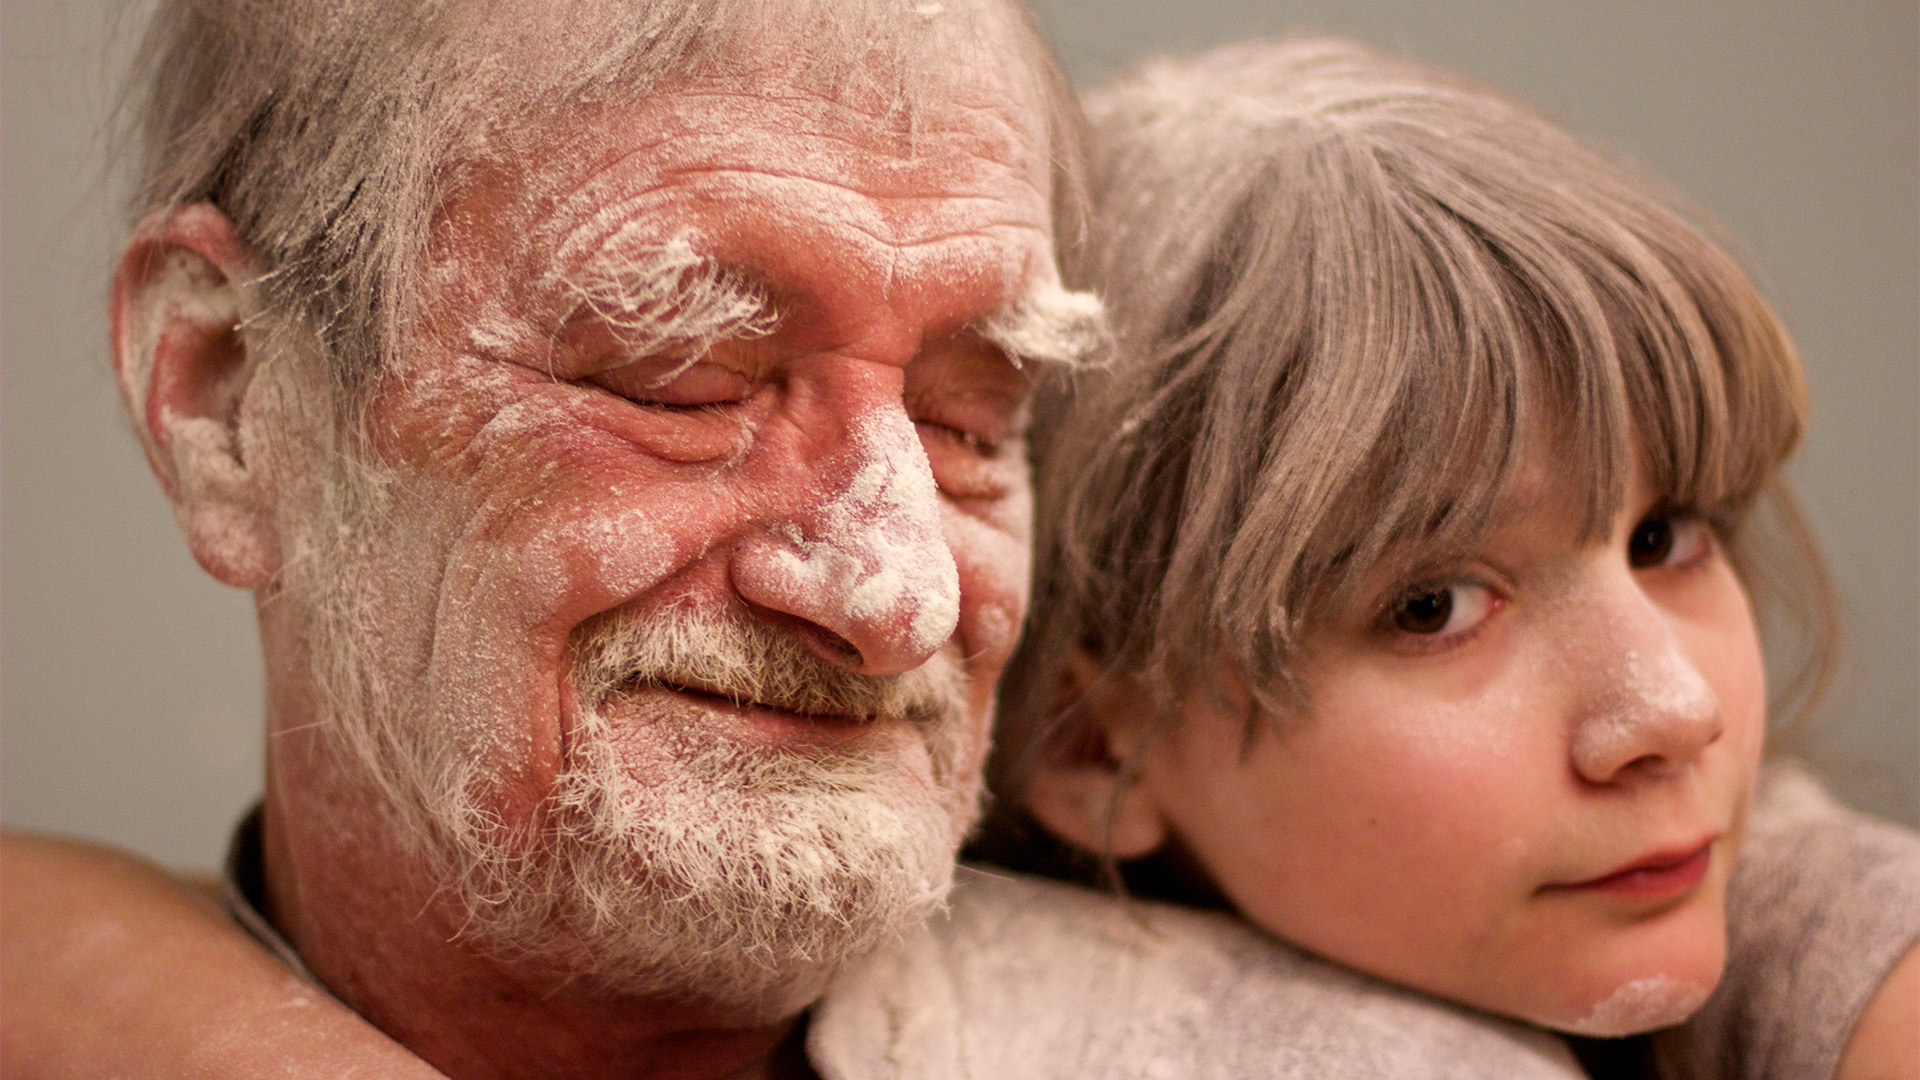 Girl and Grandfather Covered in Flour | My Father the Introvert: A Photo Essay